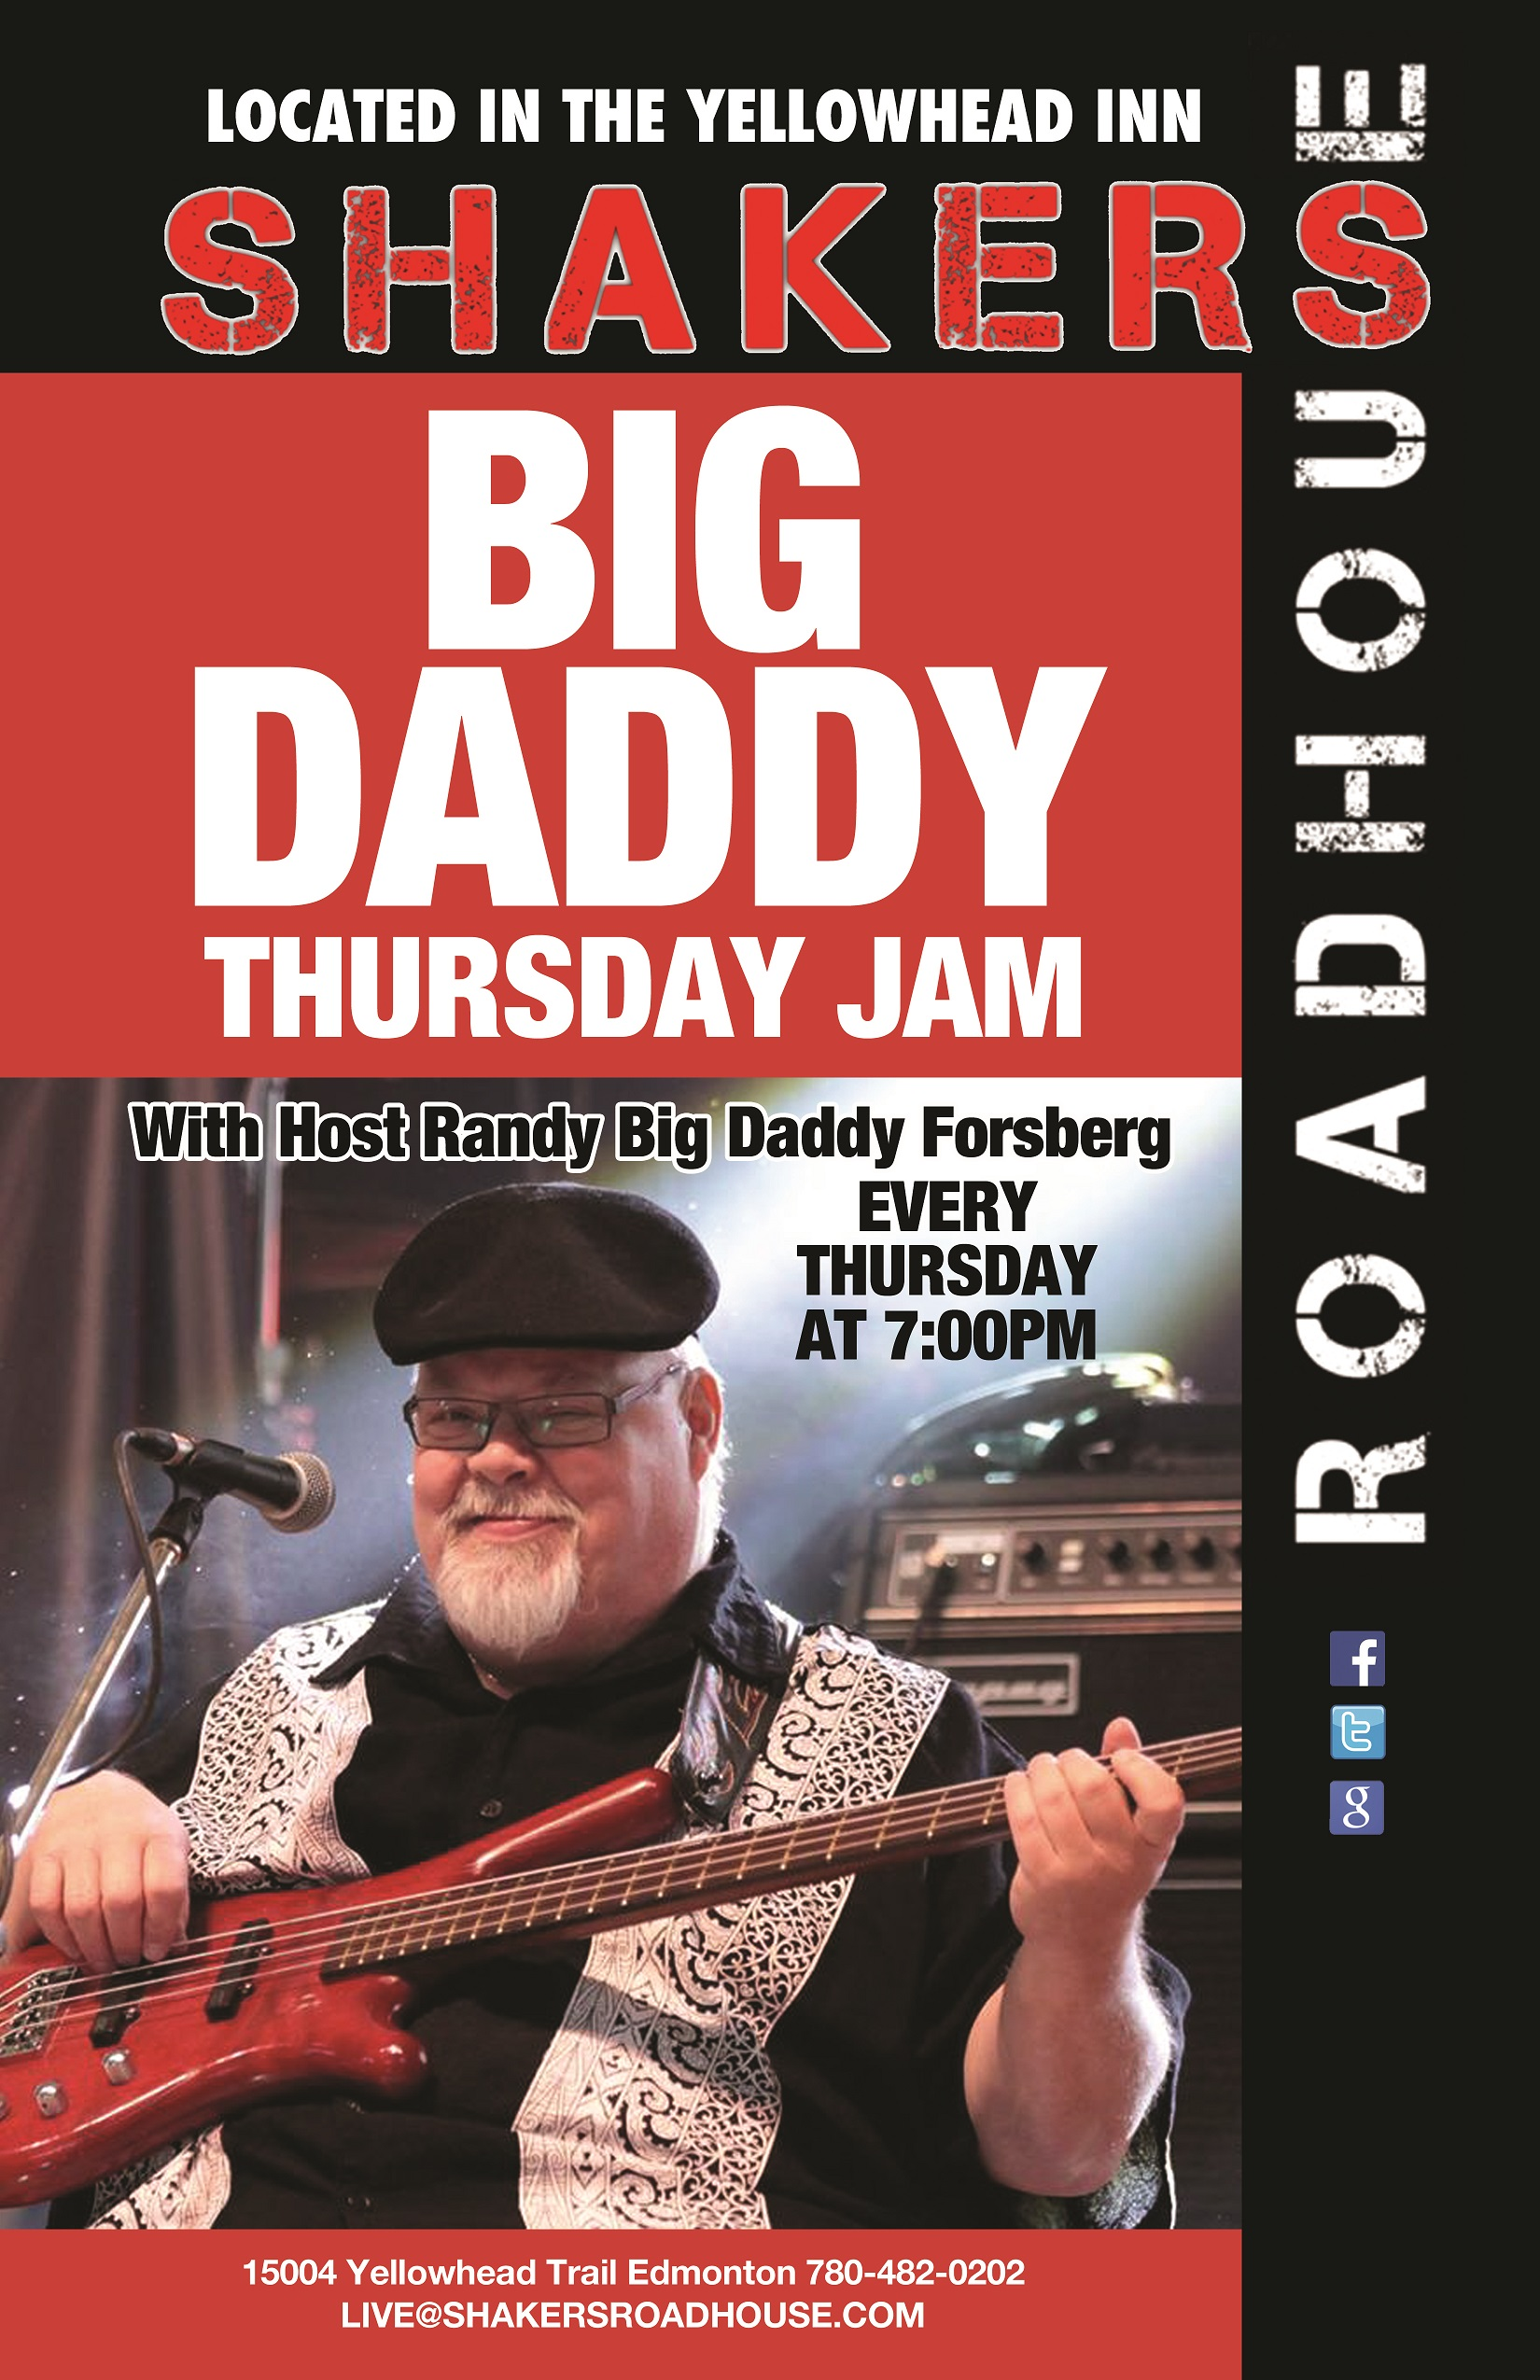 Big Daddy Thursday Jam @ Shakers Roadhouse